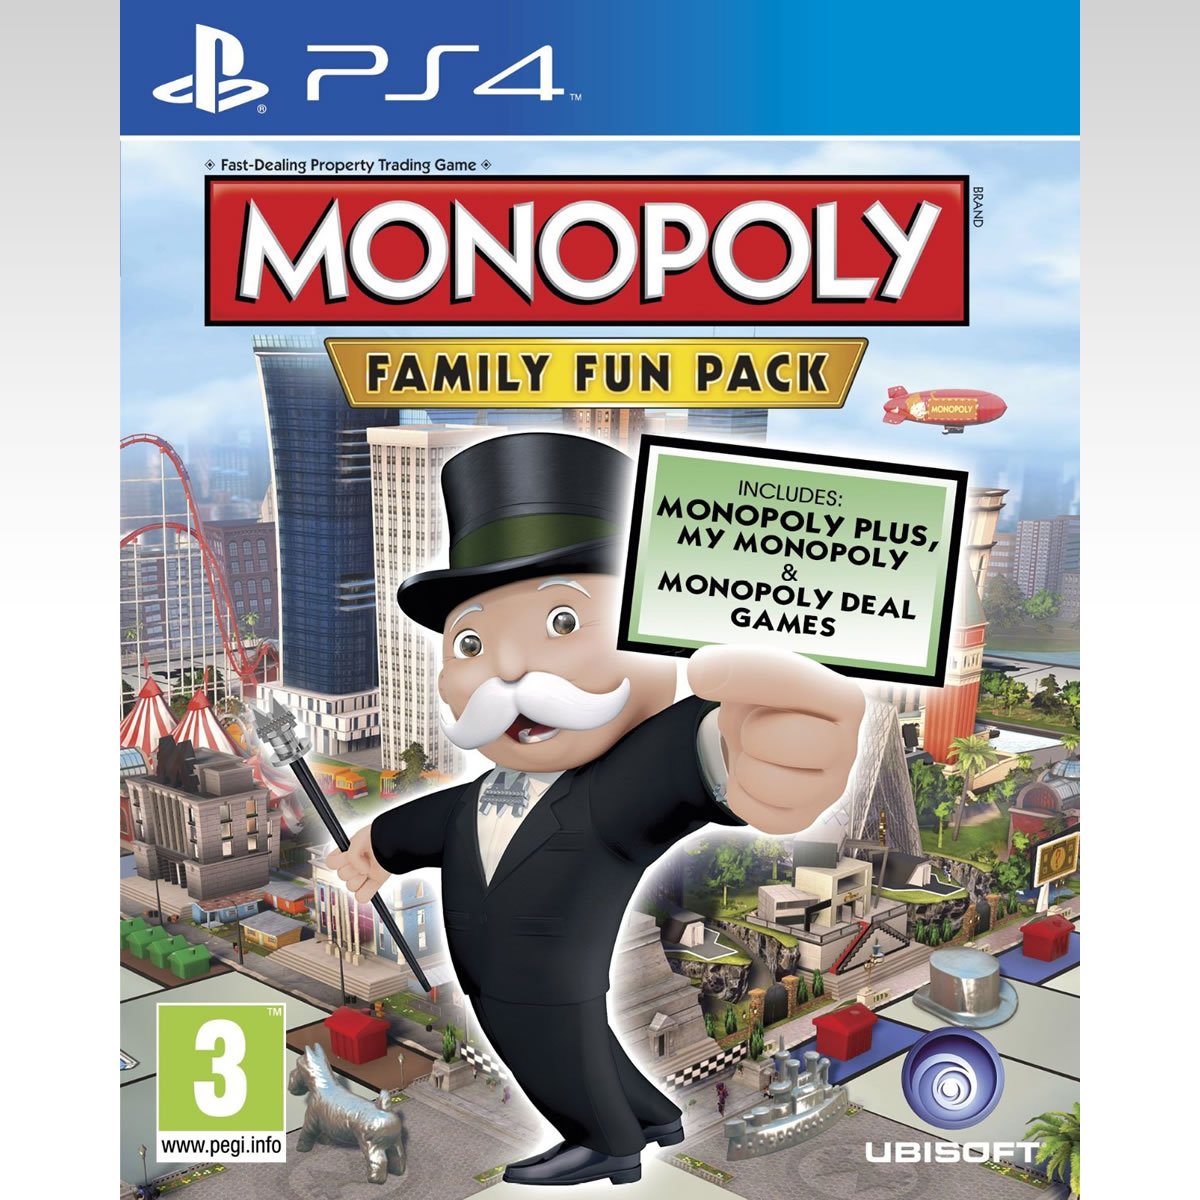 MONOPOLY FAMILY FUN PACK - DELUXE EDITION (PS4)